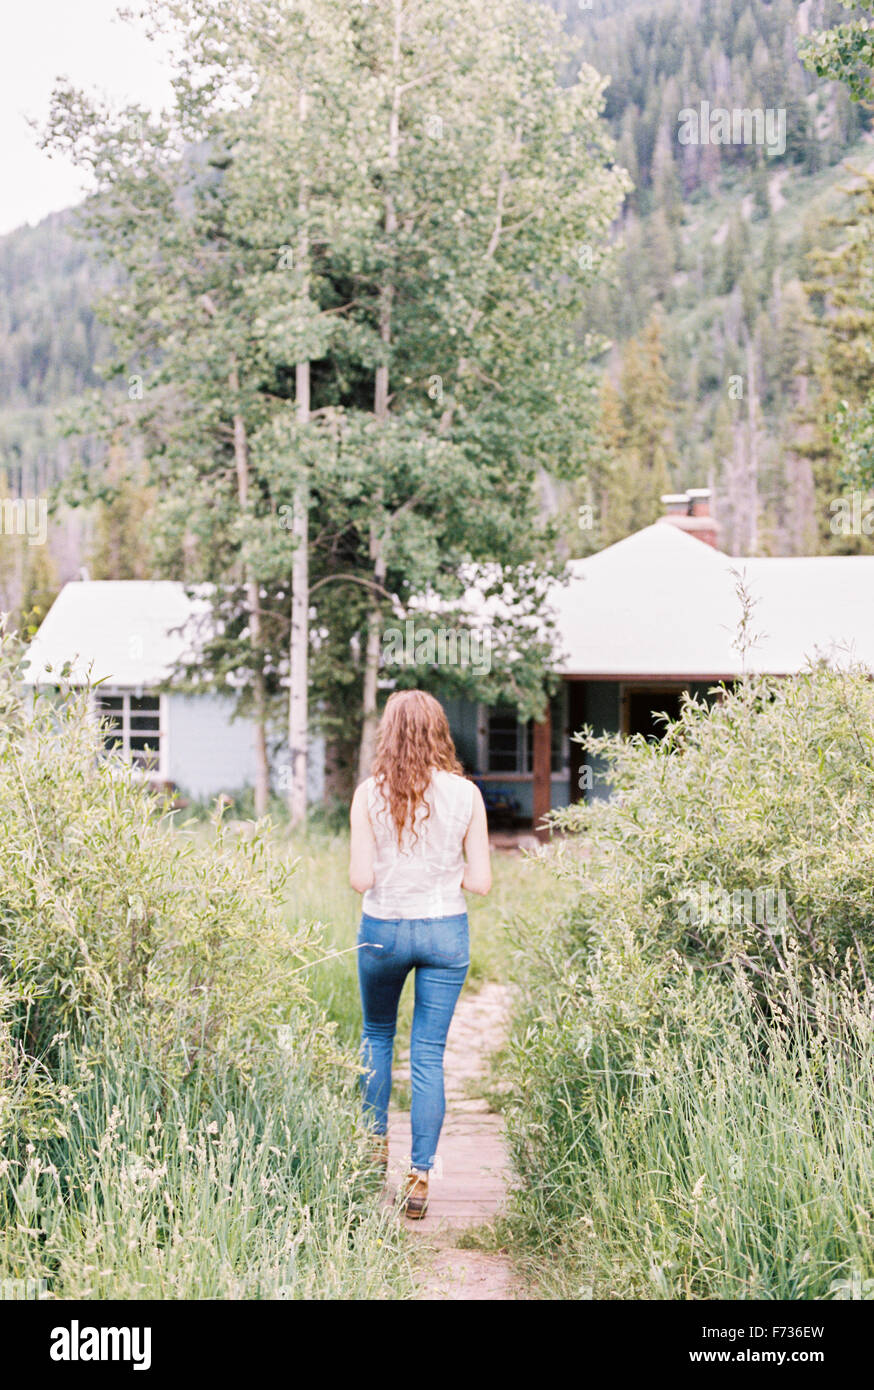 Woman walking along a footpath on a ranch. - Stock Image